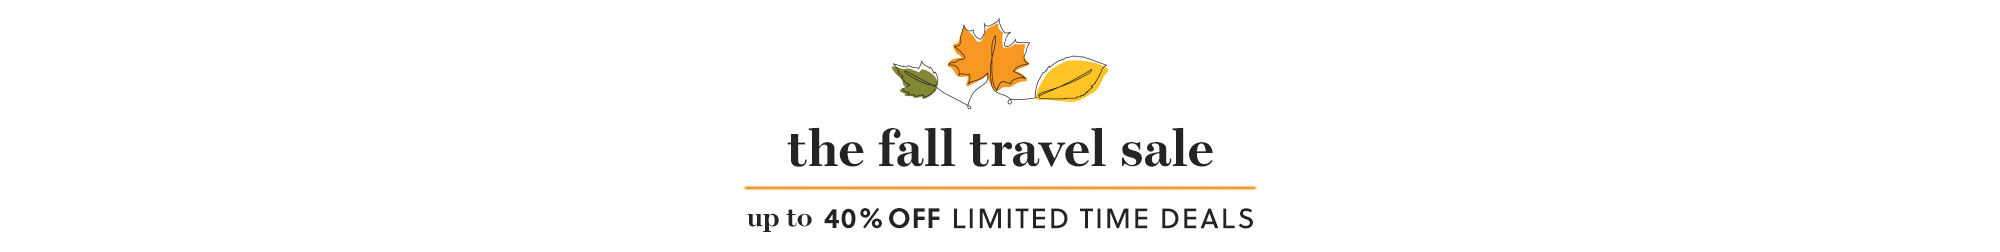 the fall travel sale: up to 40% off LIMITED TIME DEALS